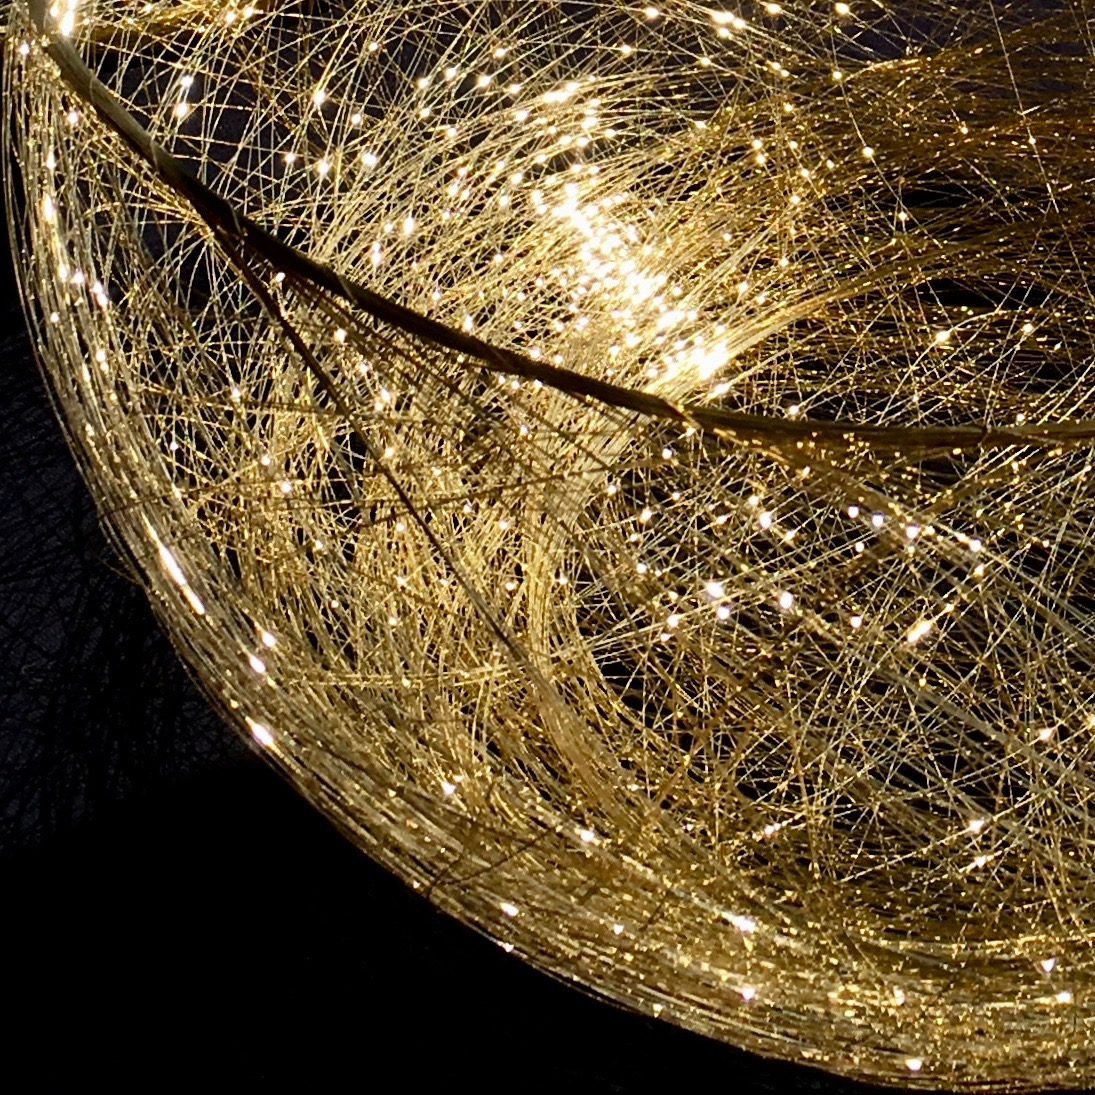 shining-brass-wire-bowl.jpg